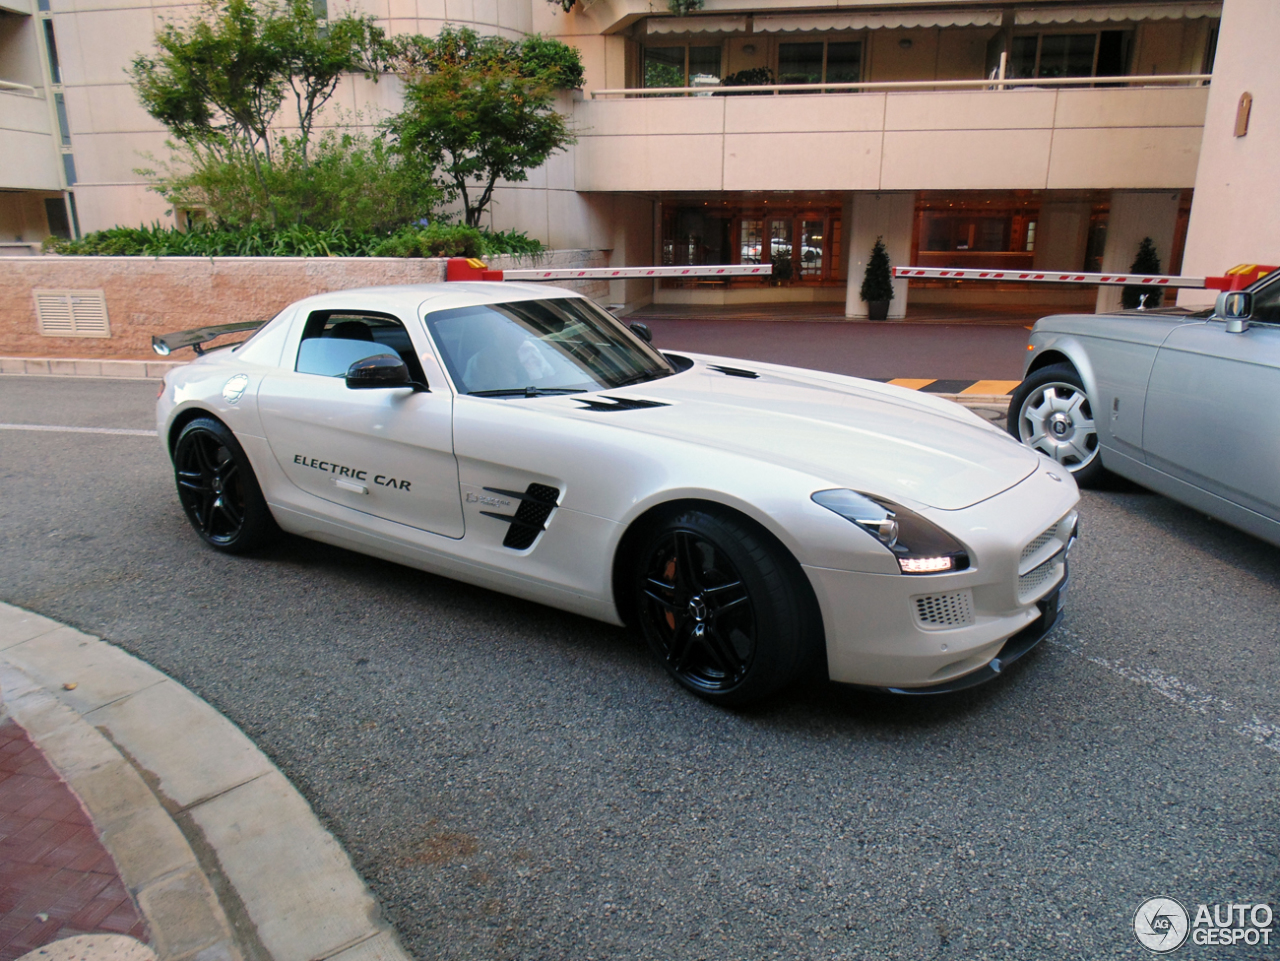 Mercedes benz sls amg electric drive 1 october 2014 for Mercedes benz sls amg electric drive price